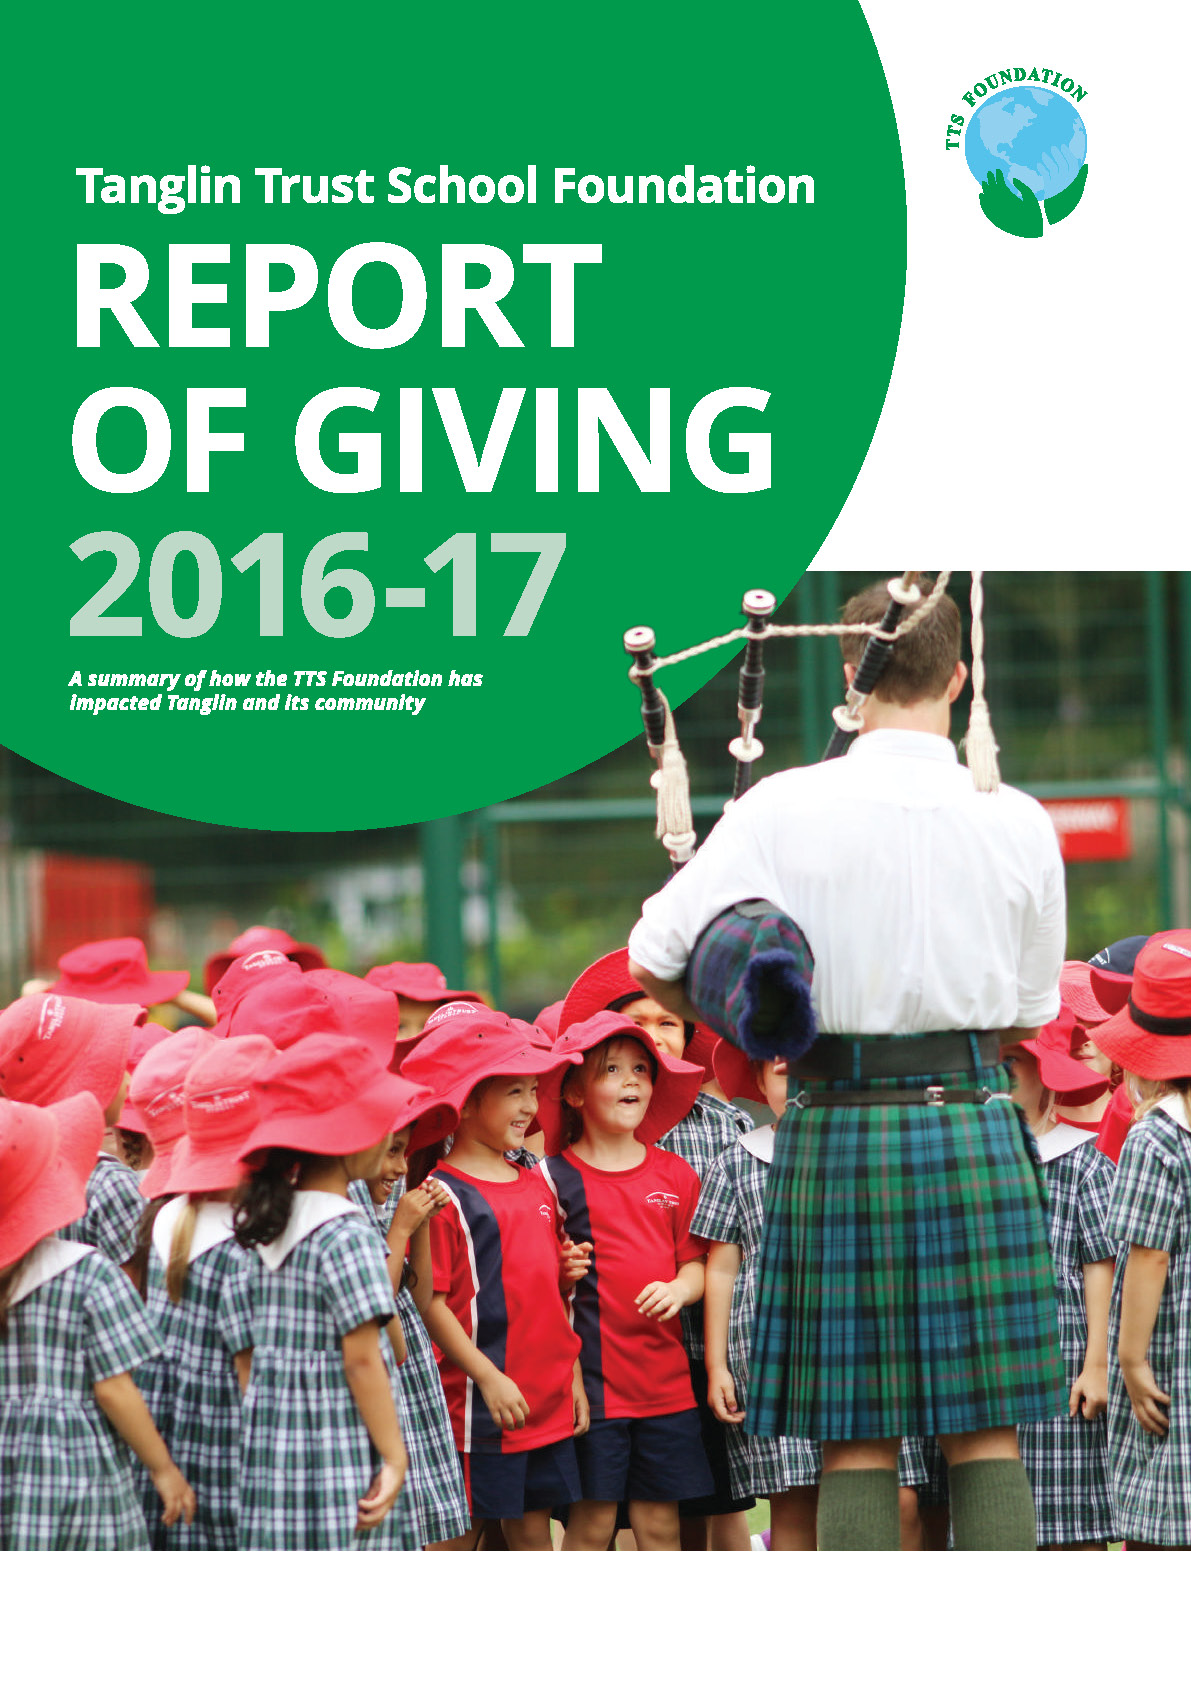 TTS Foundation Report of Giving 2016-17